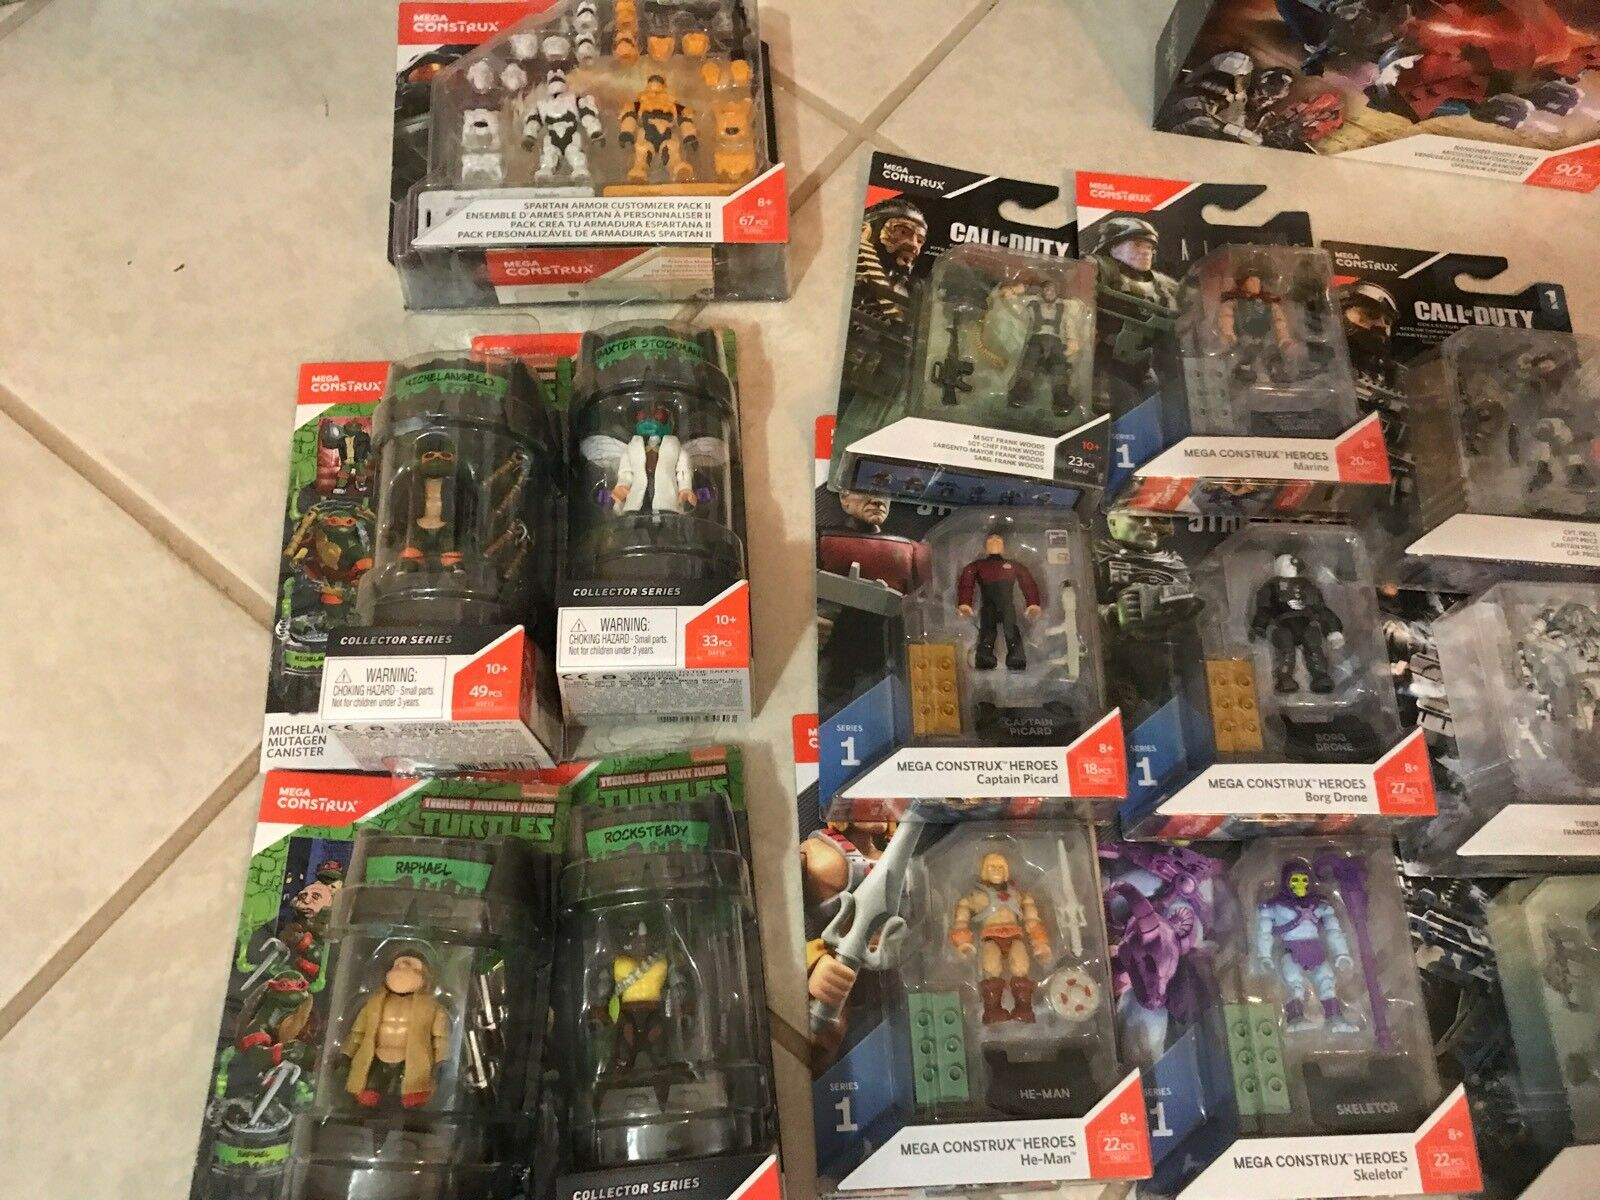 Motu He-man Skeletor Halo Call Of duty TMNT Ninja Ninja Ninja Turtles Mega Construx Huge Lot 7d6243